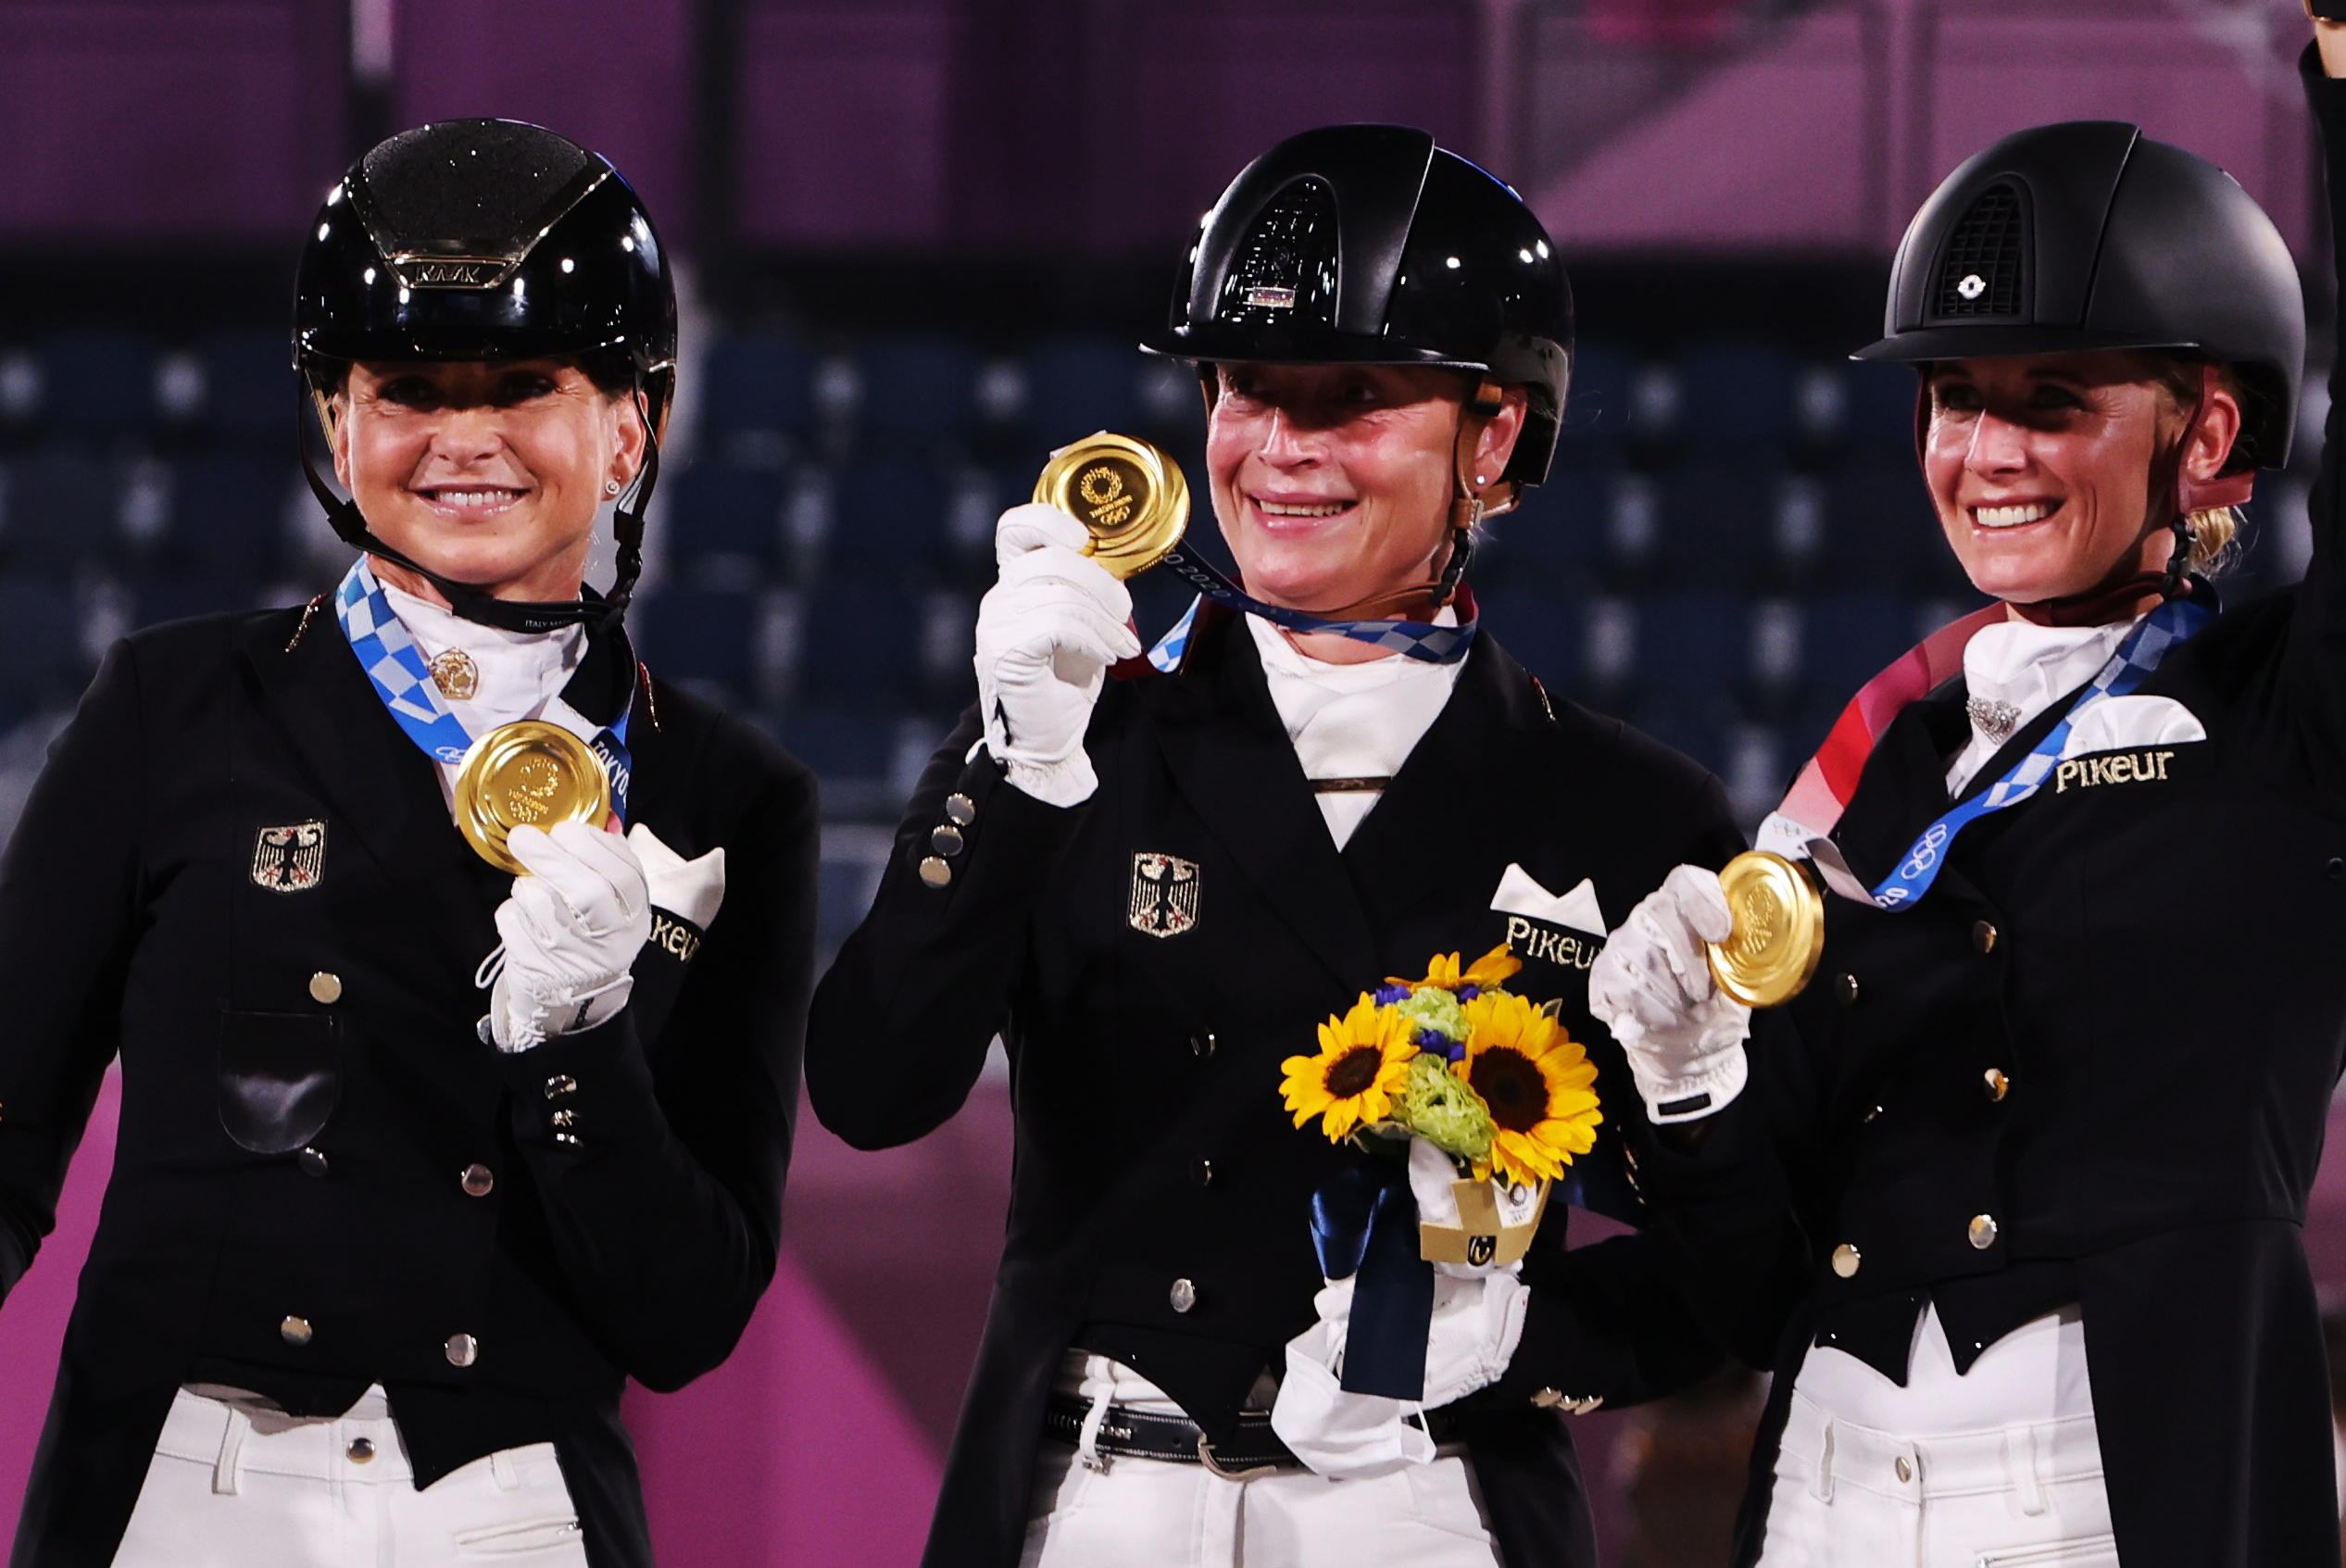 Tokyo 2020 Olympics - Equestrian - Dressage - Team - Medal Ceremony - Equestrian Park - Tokyo, Japan - July 27, 2021. Gold medallists Dorothee Schneider of Germany, Isabell Werth of Germany and Jessica von Bredow-Werndl of Germany celebrate on the podium. REUTERS/Alkis Konstantinidis